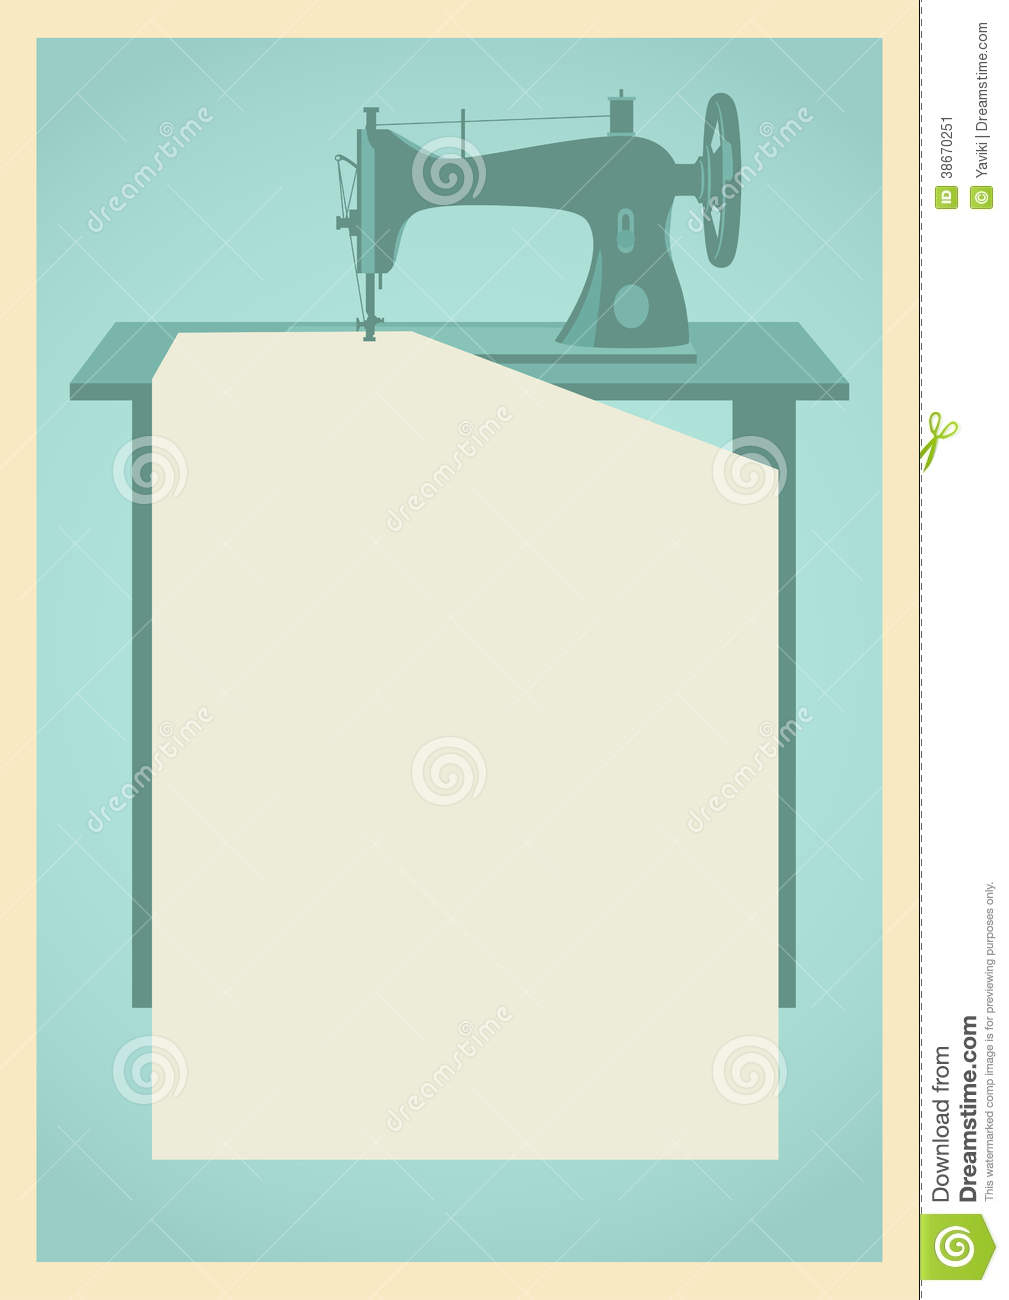 Sewing Machine Background Stock Image Image 38670251